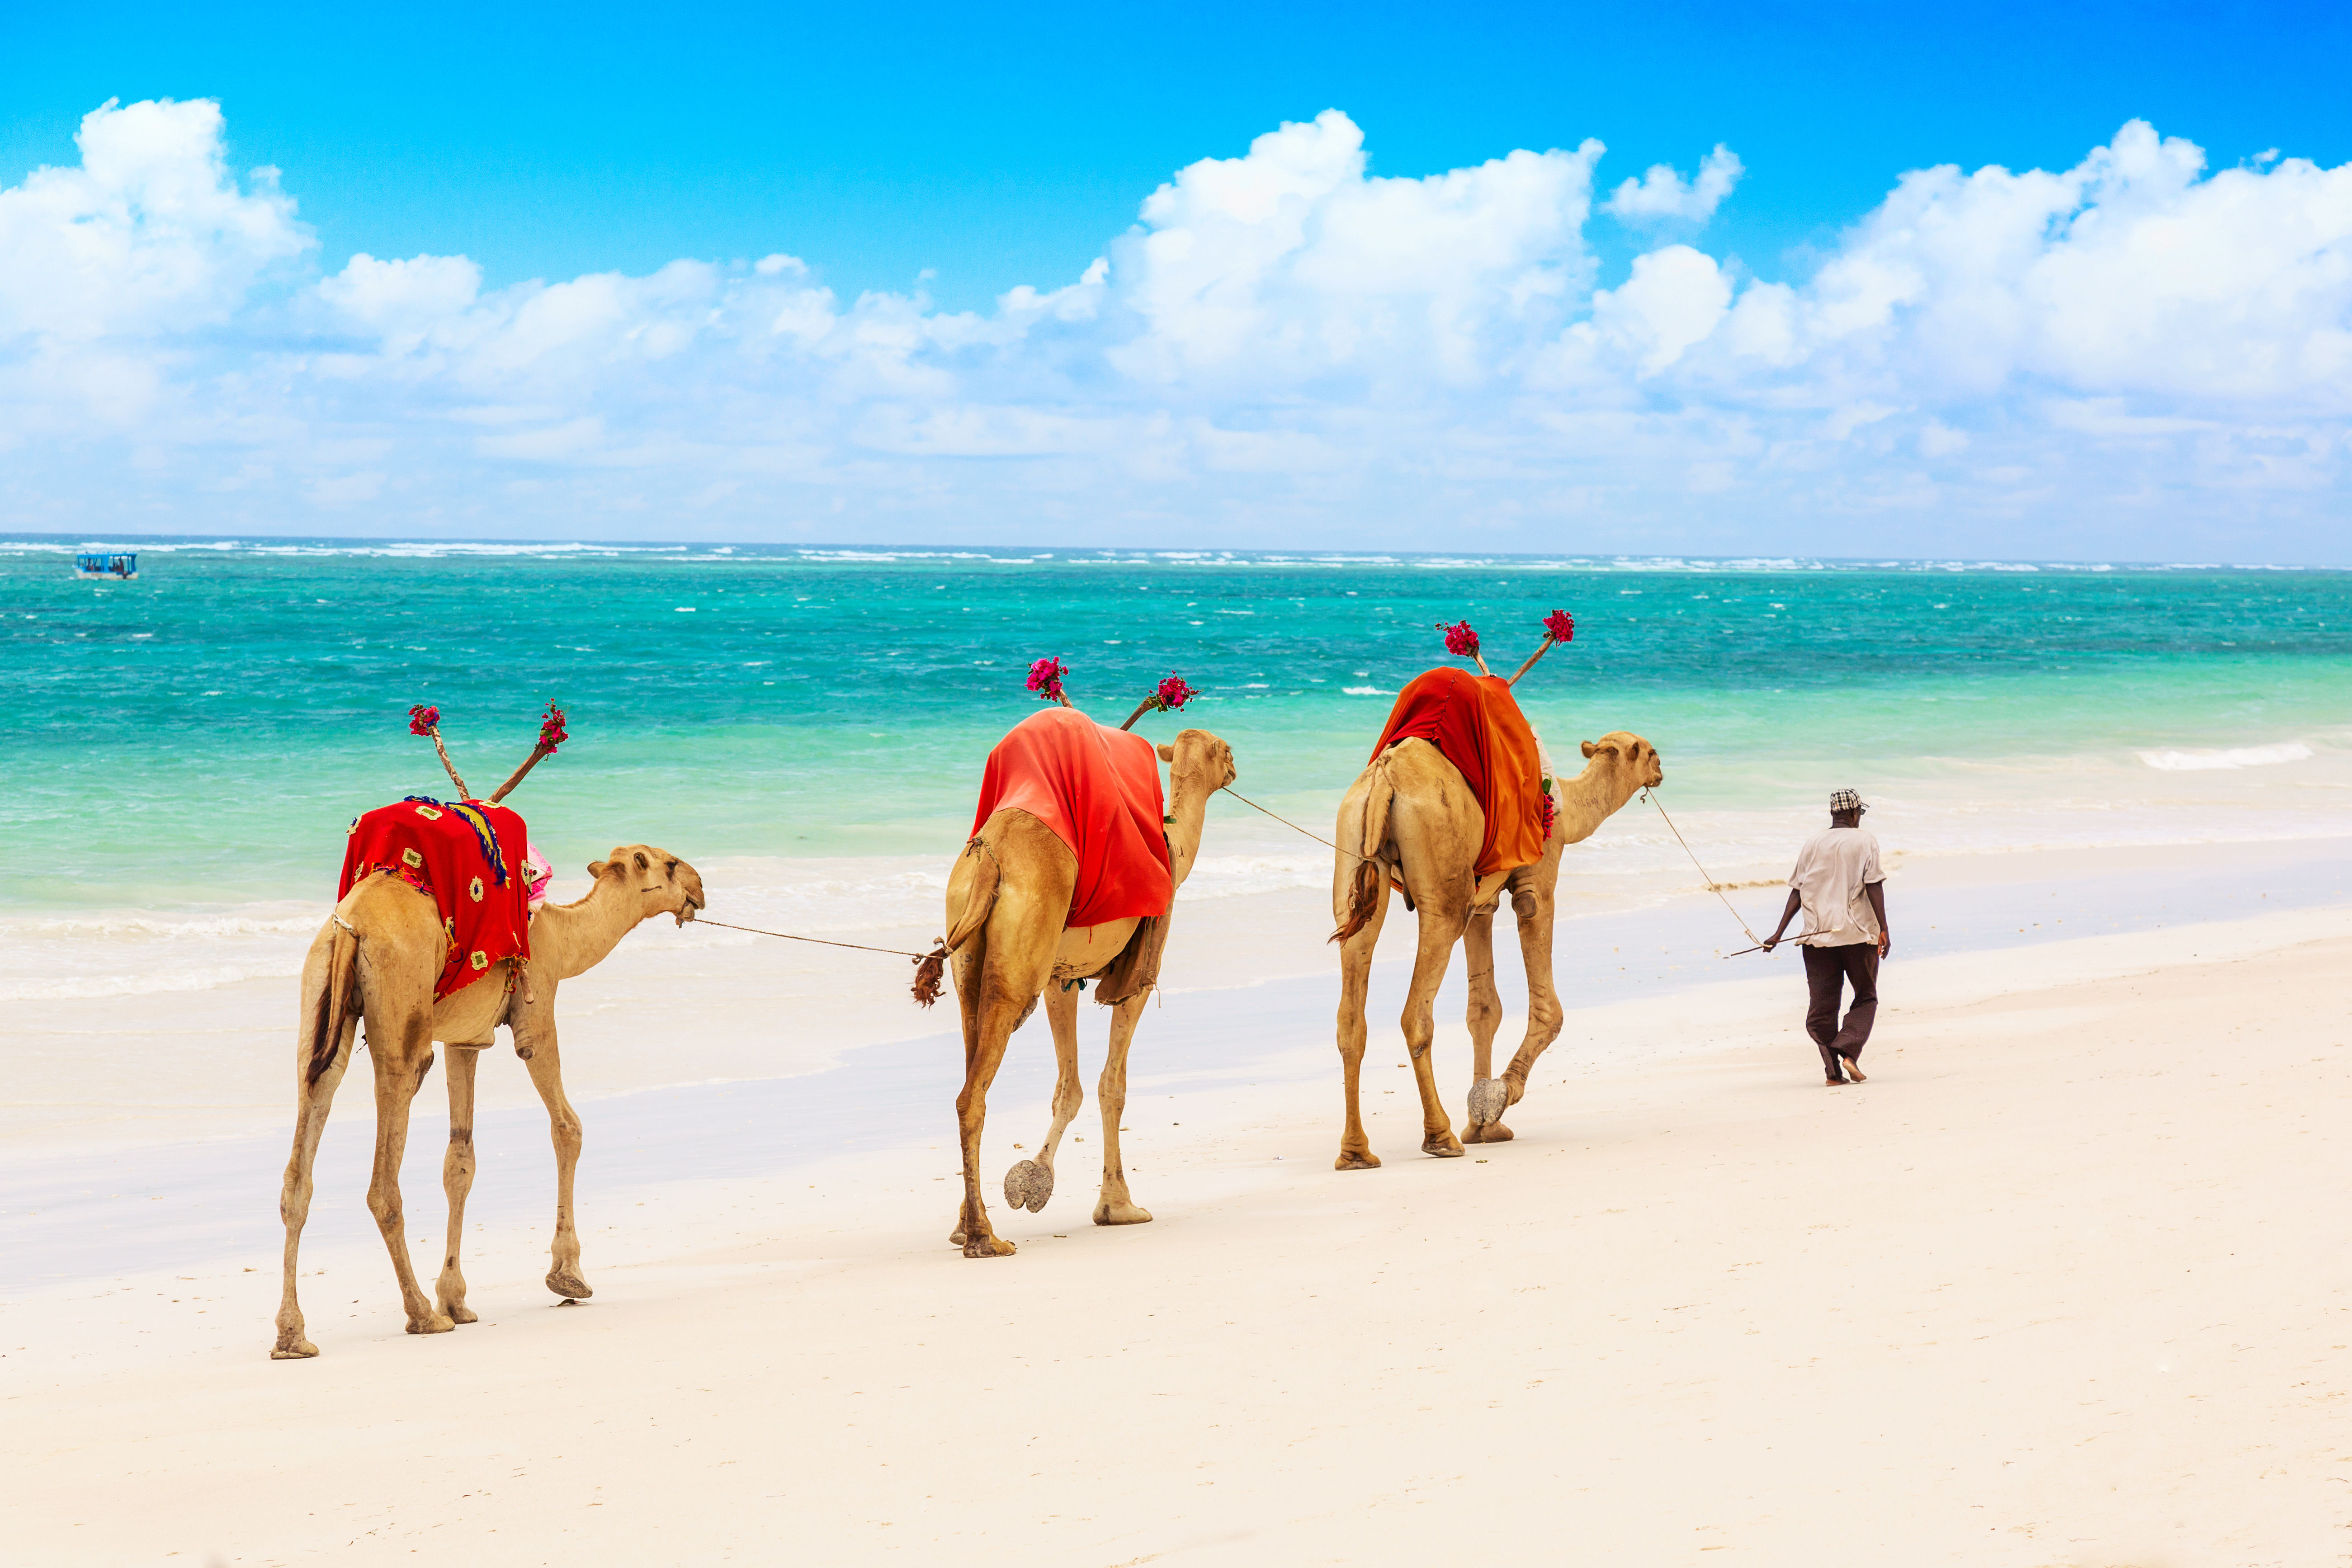 Camels on African Indian Ocean white sand beach with clear blue waters.